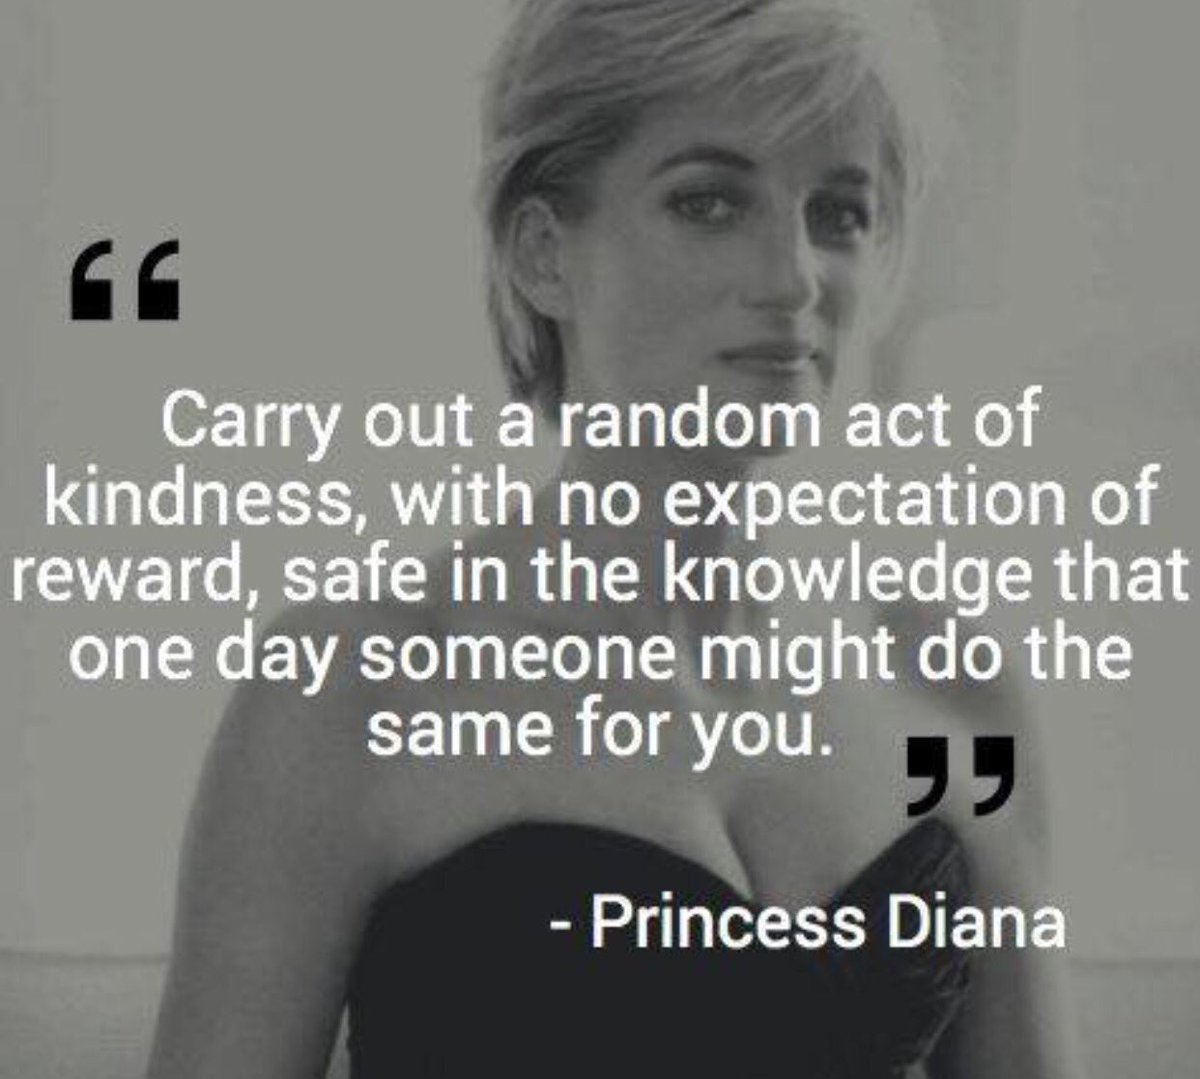 Carry out a random act of kindness, with no expectation of reward, safe in the knowledge that one day someone might do the same for you.  – Princess Diana